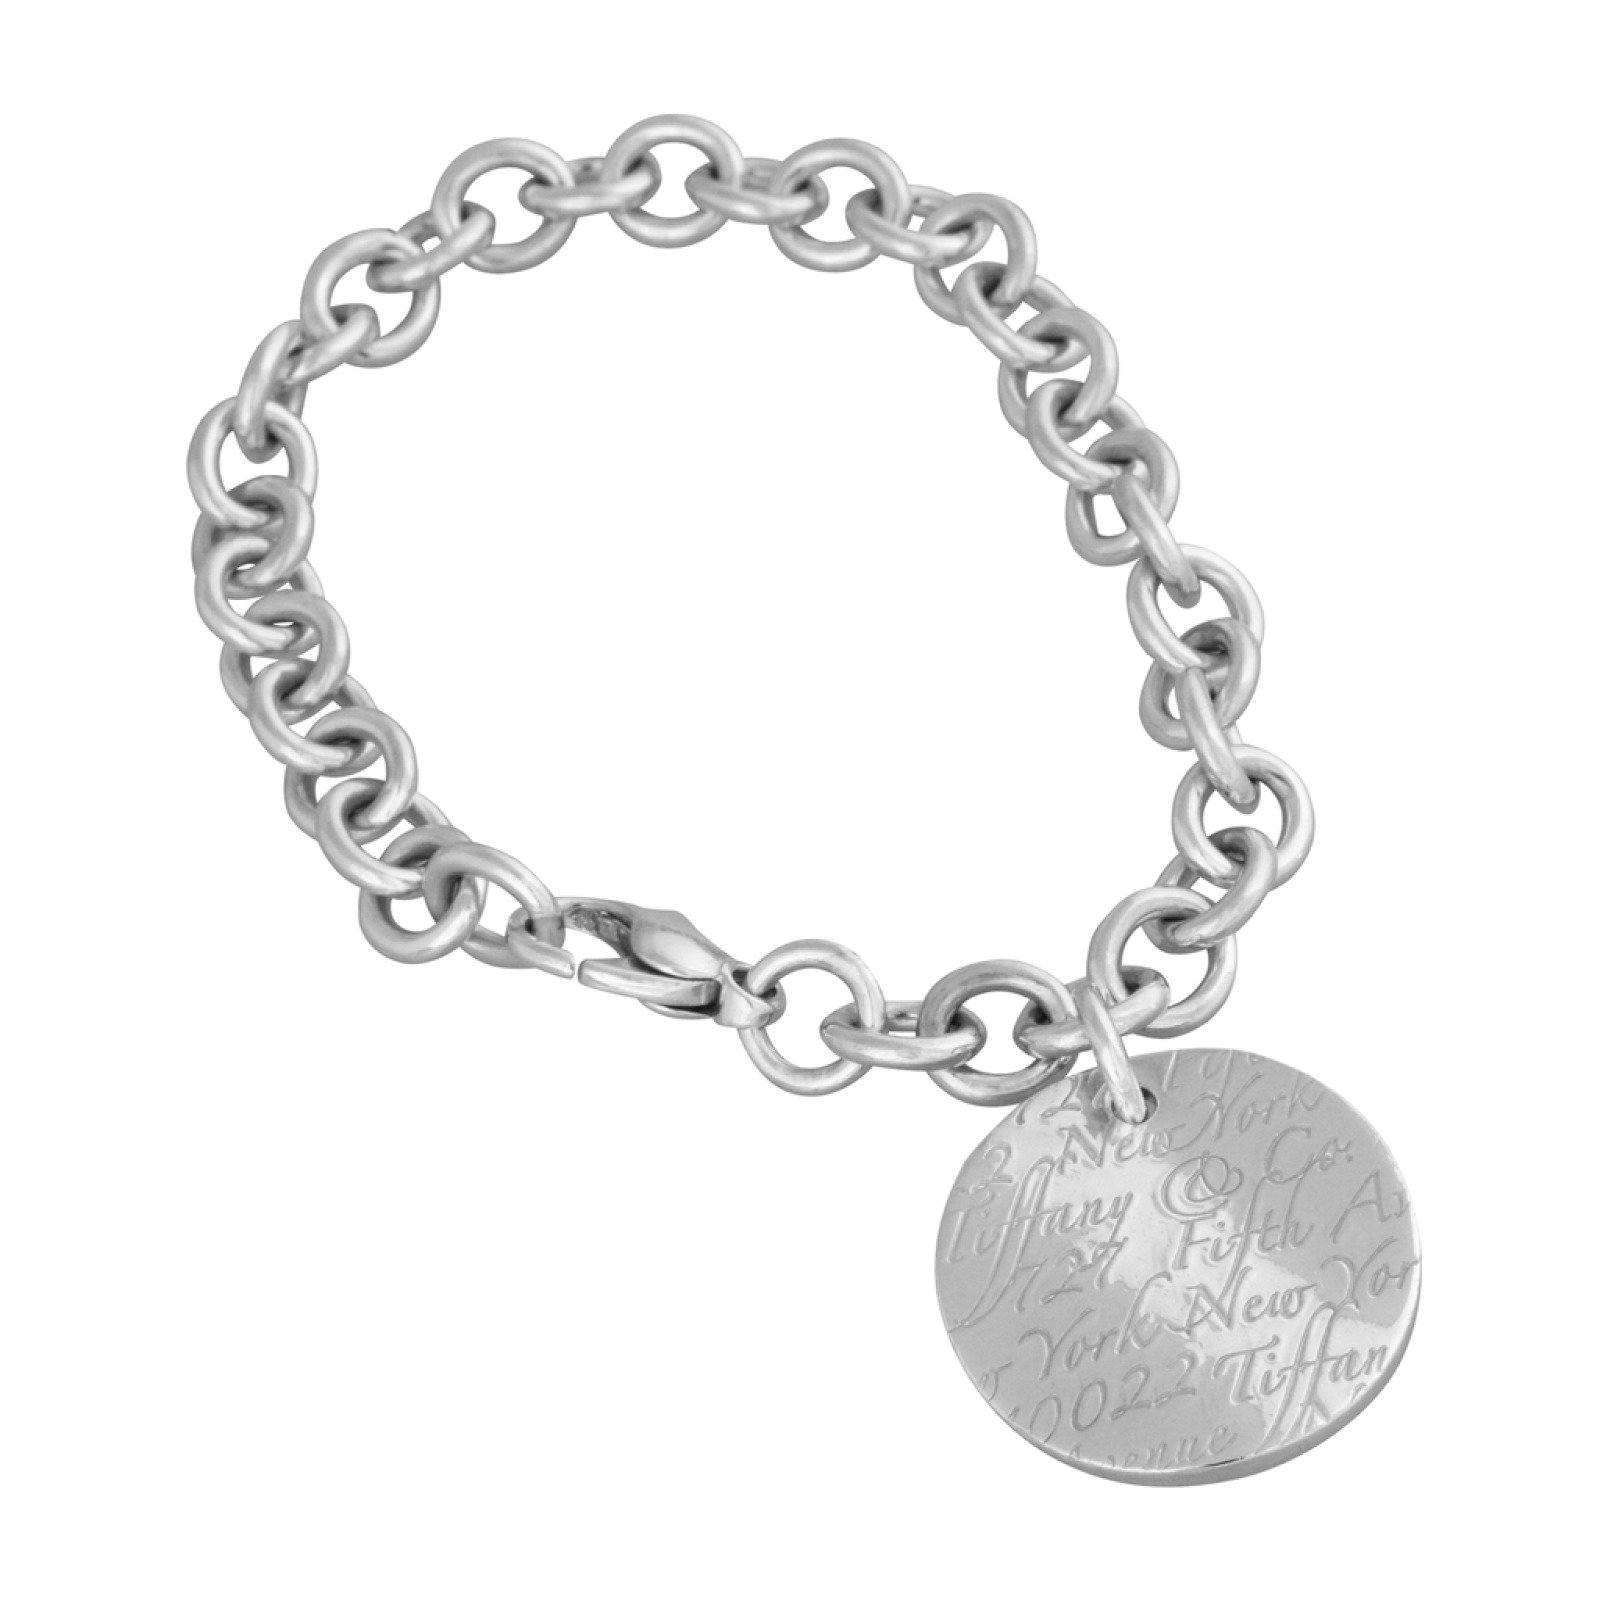 60a9c9aa5 Tiffany & Co. Notes Round Tag Bracelet– Oliver Jewellery